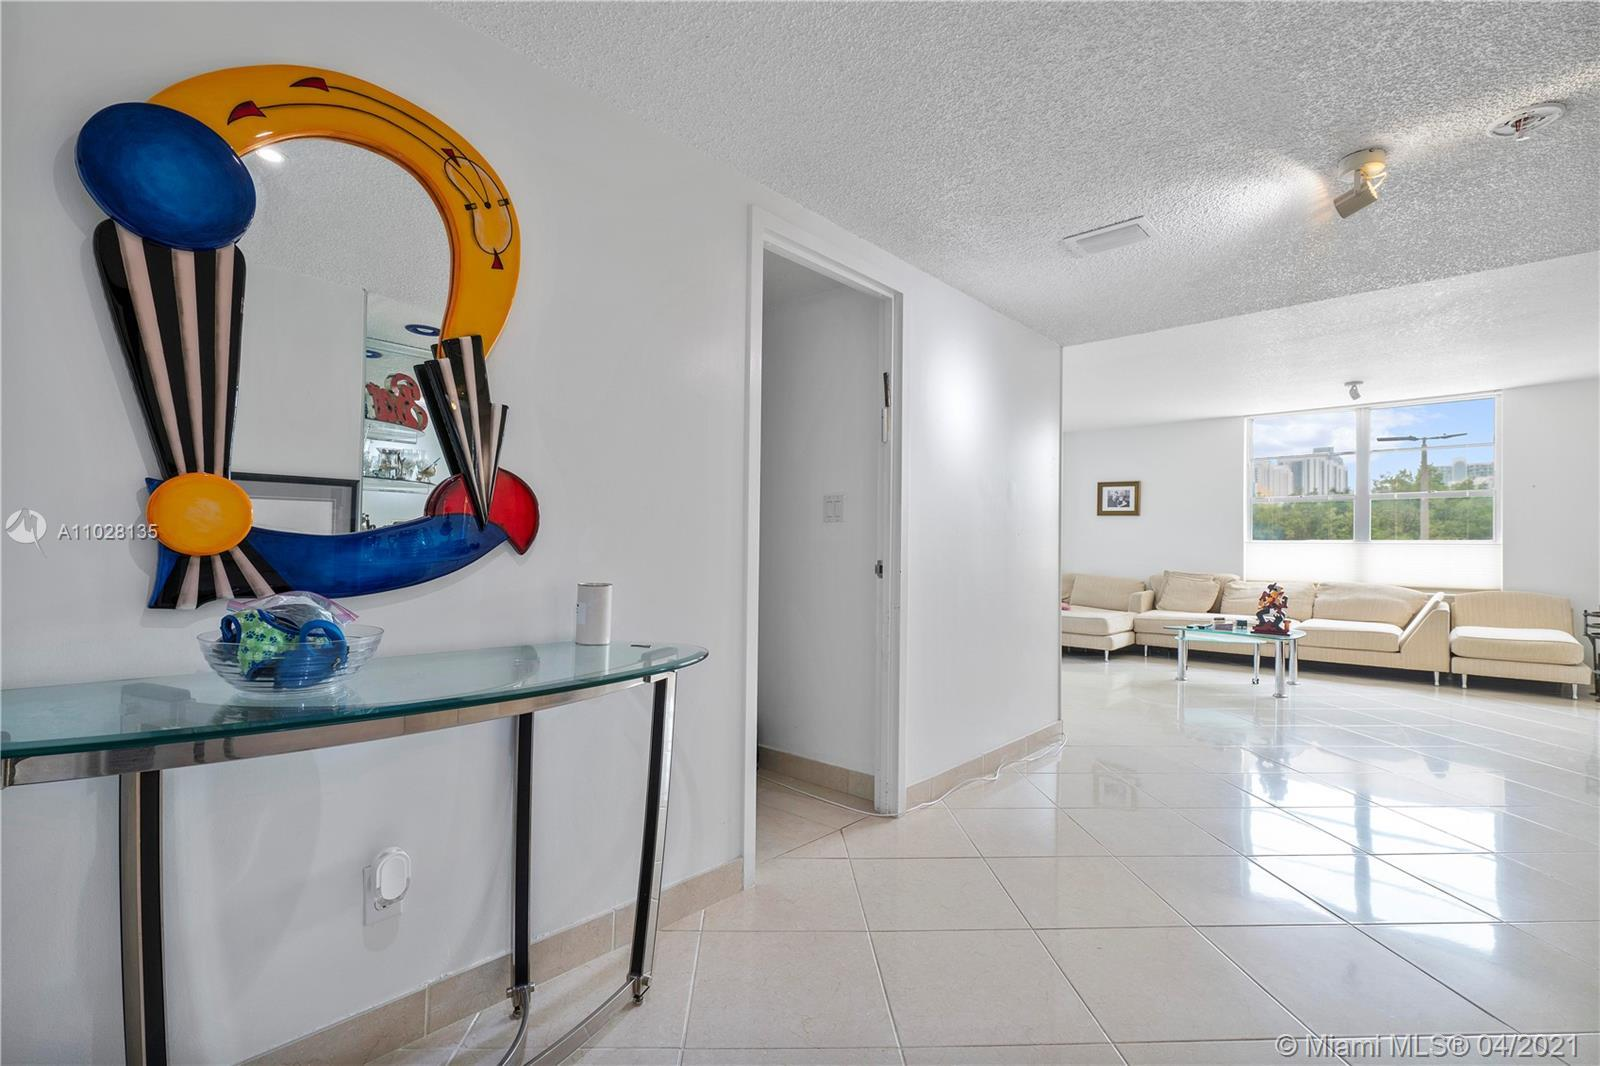 LARGEST 3/3 LOCATED IN THE DESIRED WINSTON TOWERS IN THE HEART OF SUNNY ISLES BEACH. 2,400 SQ FT OF